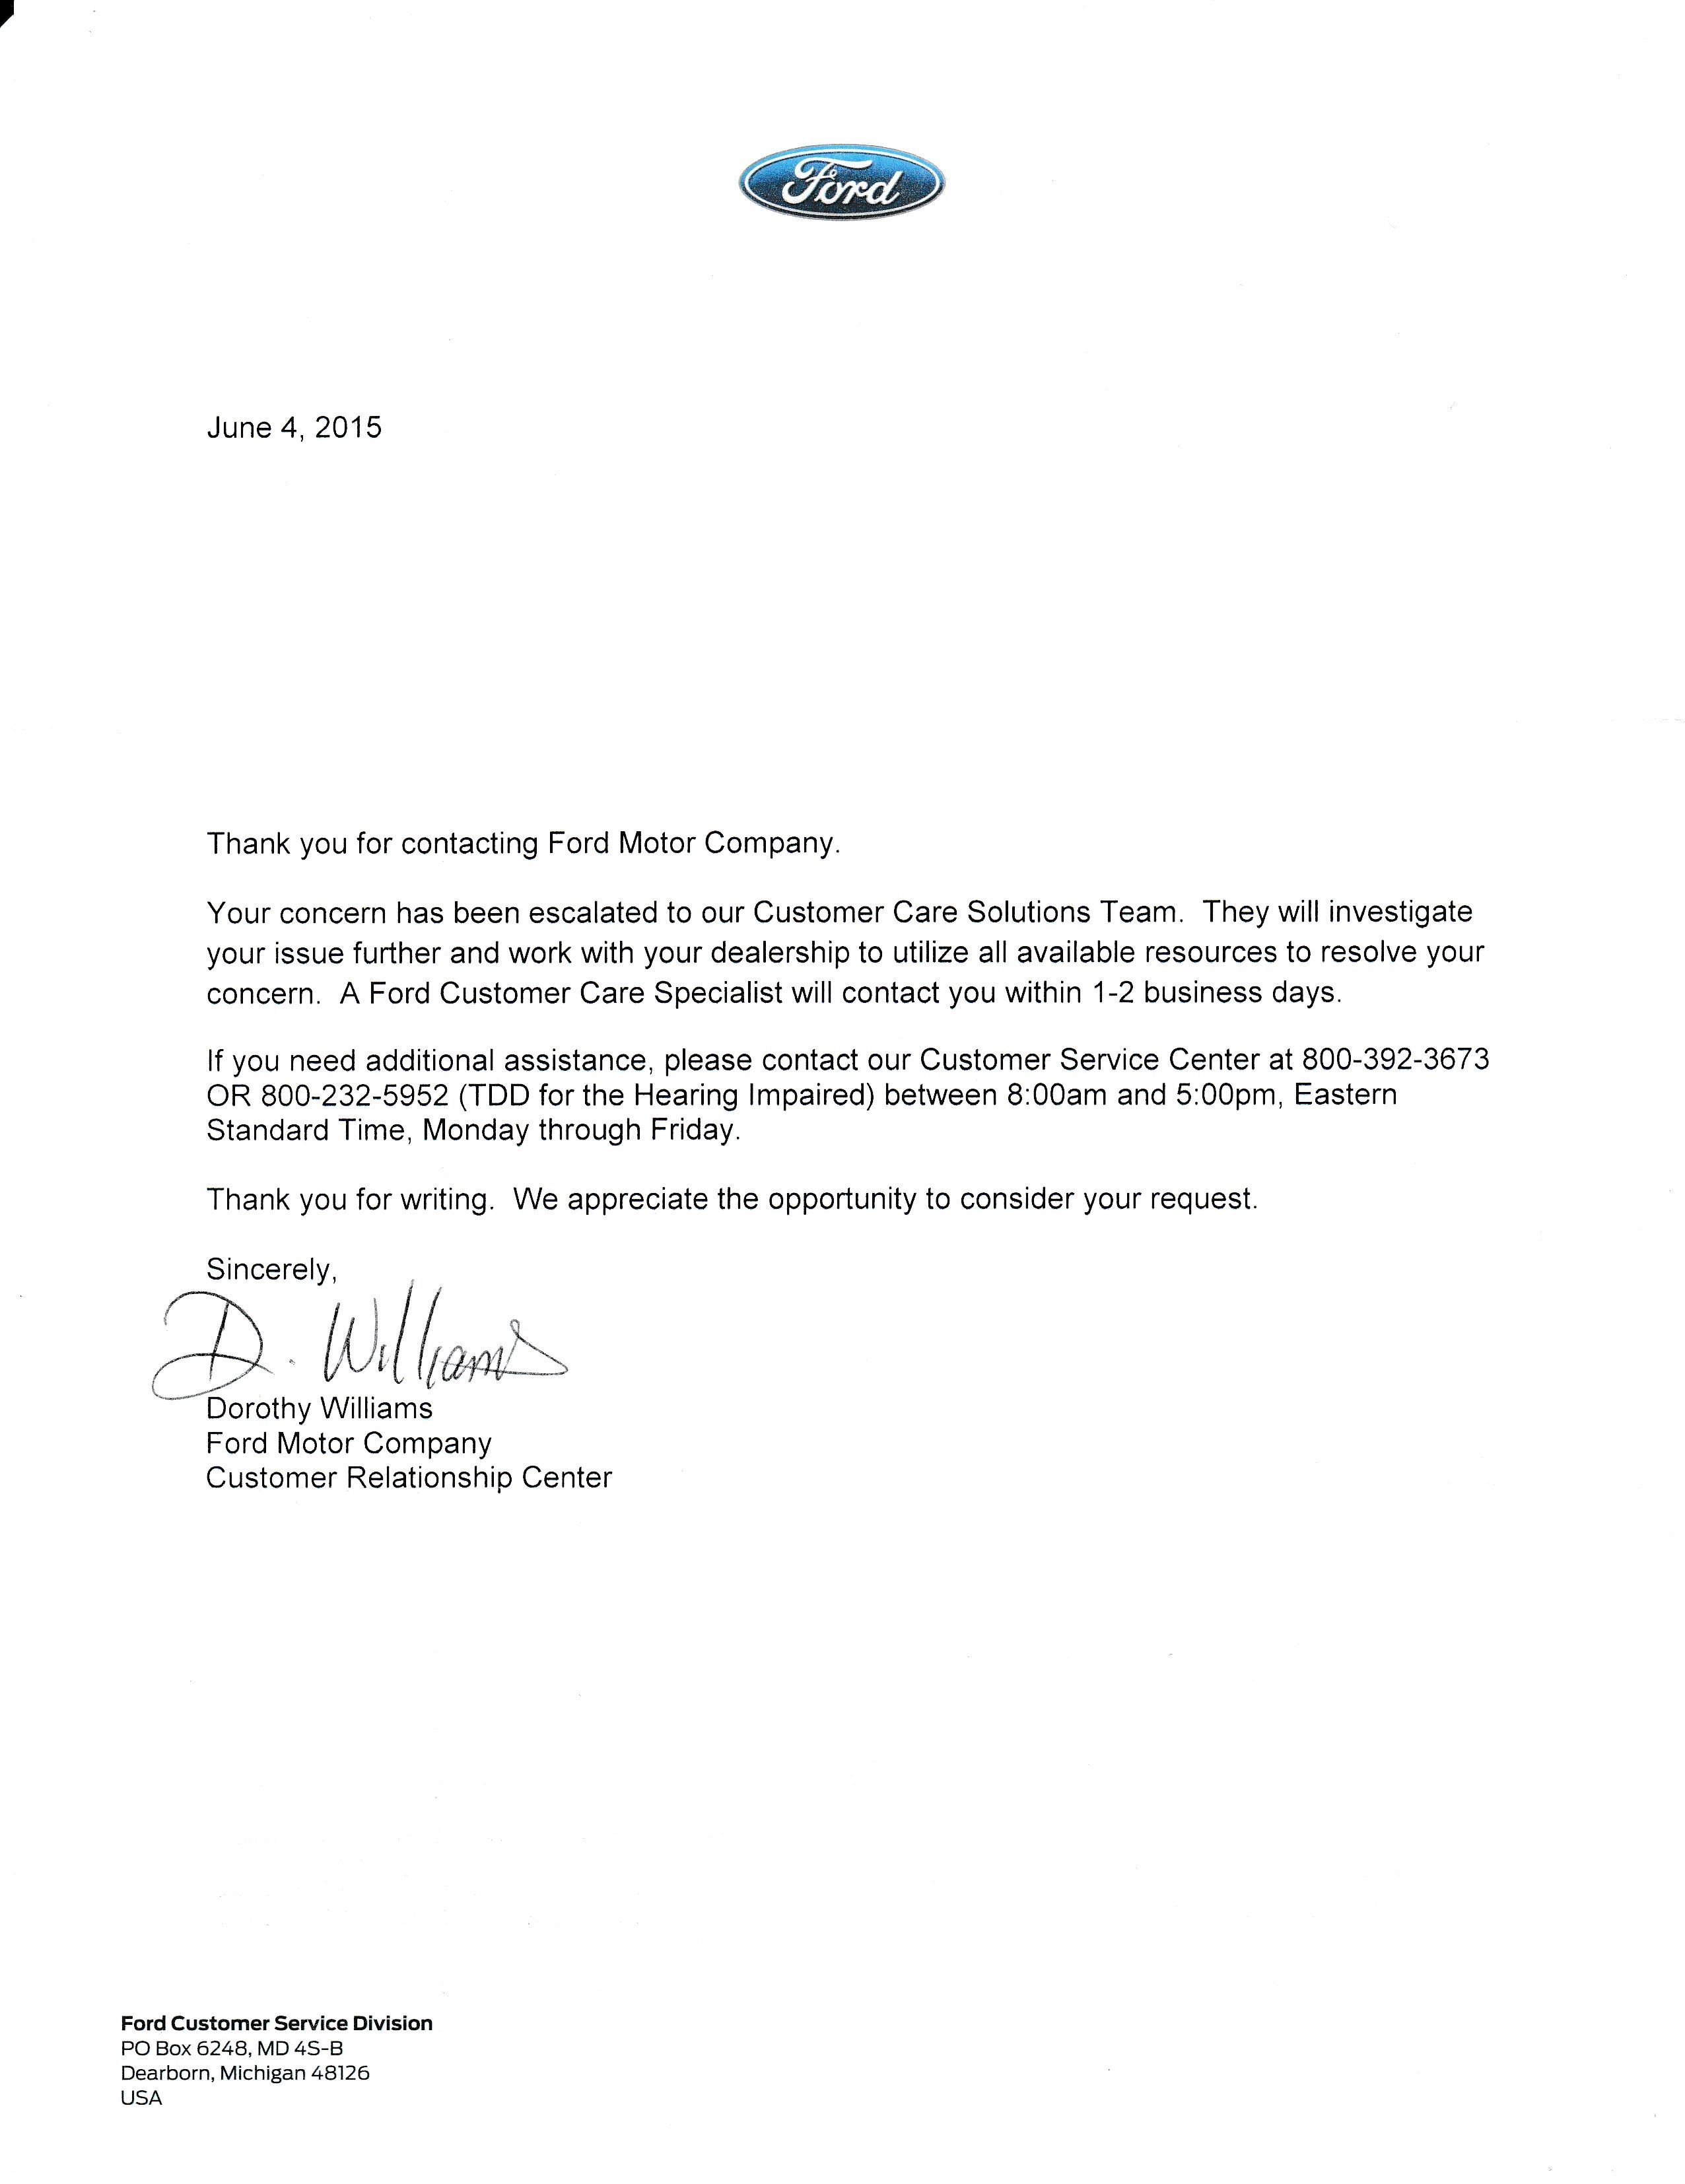 Letter from Ford in response to my complaint about transmission.